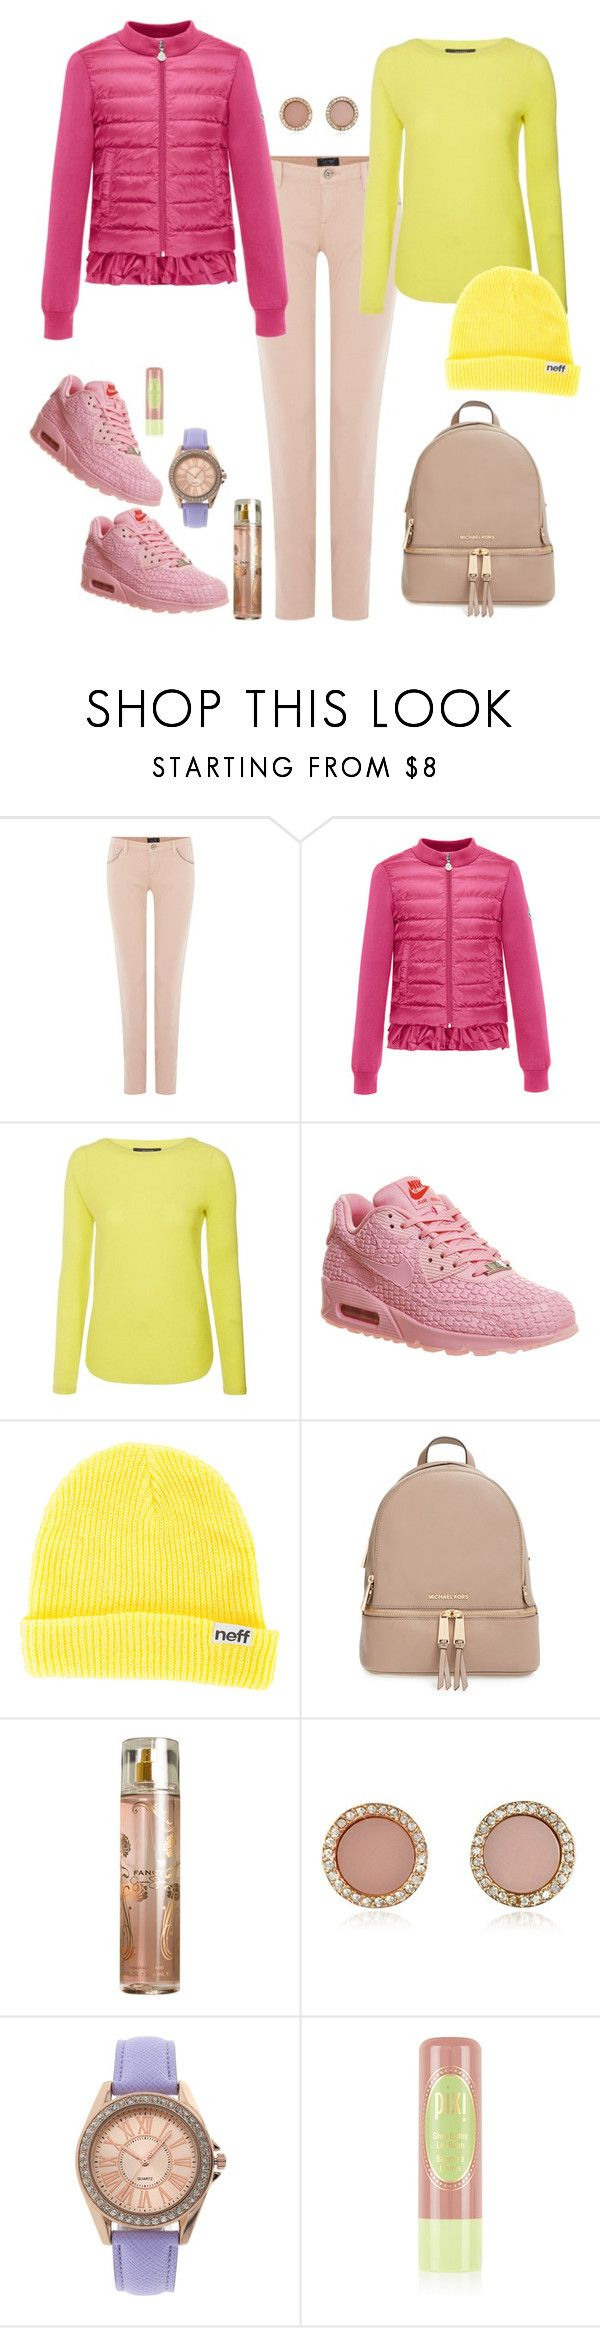 """Puffer jacket"" by kimmmeo ❤ liked on Polyvore featuring Armani Jeans, Moncler, MaxMara, NIKE, Neff, MICHAEL Michael Kors, Jessica Simpson, Michael Kors and Geneva"